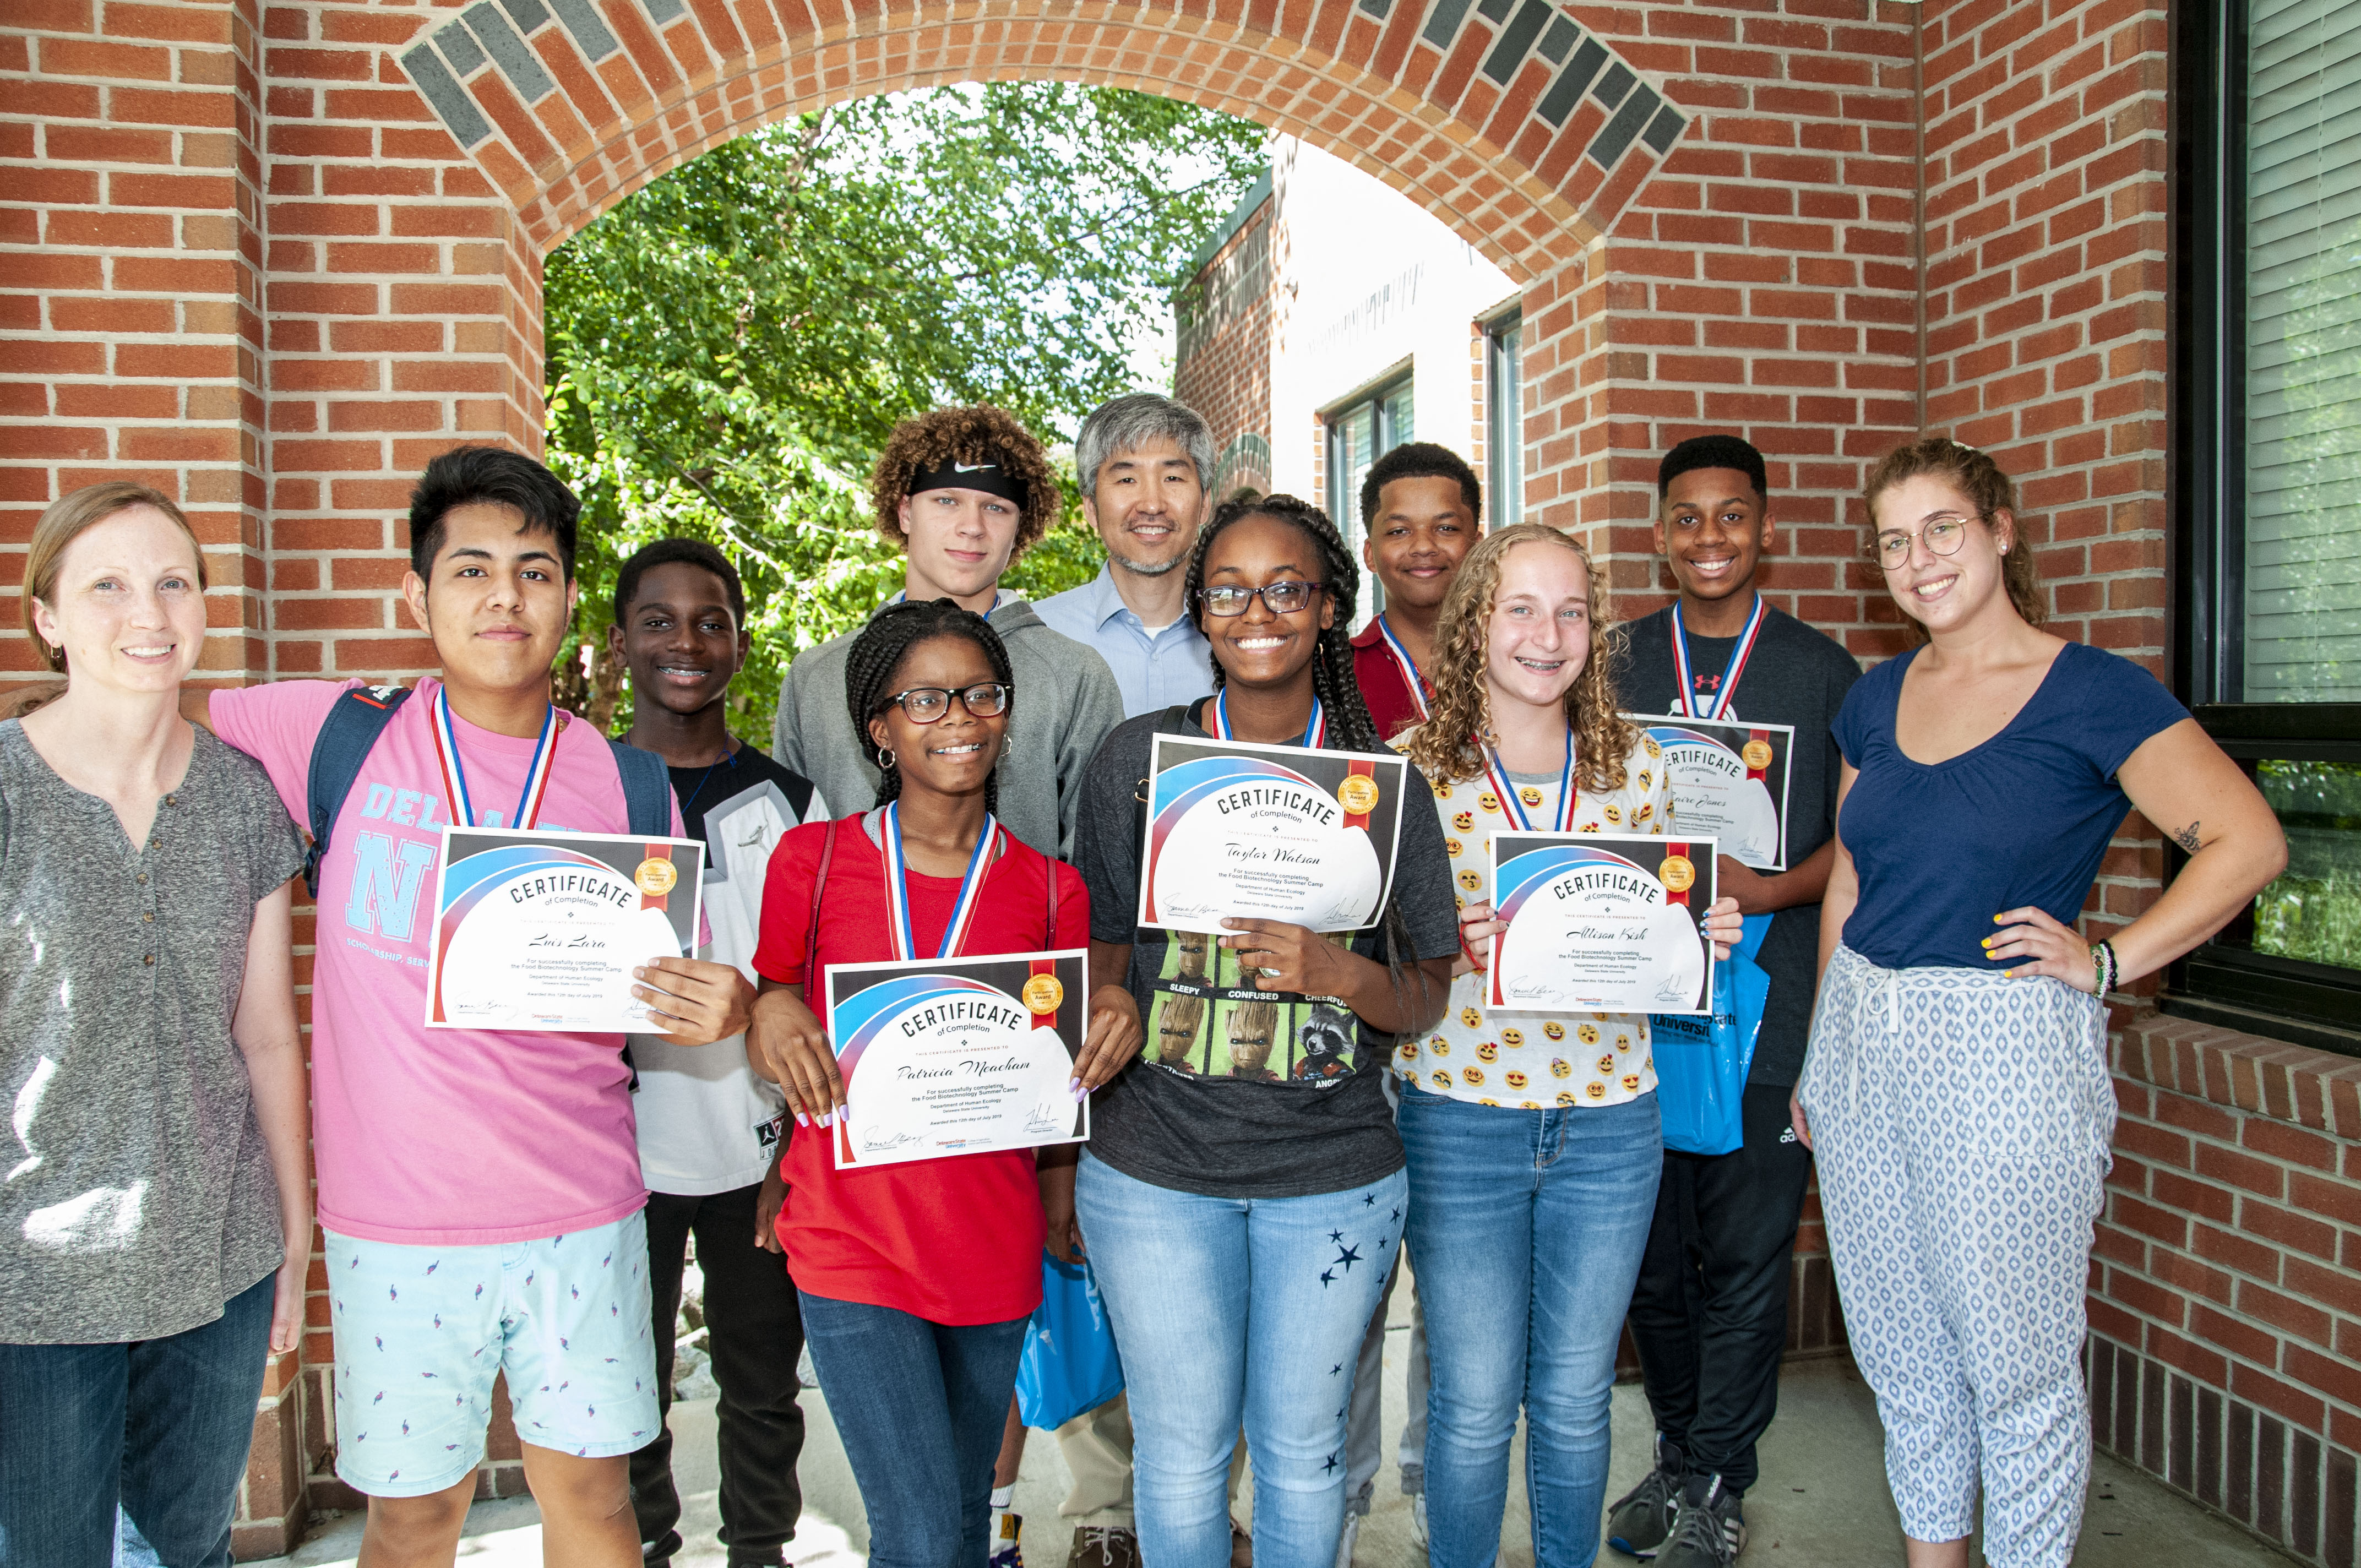 Food Biotechnology Summer Camp participants